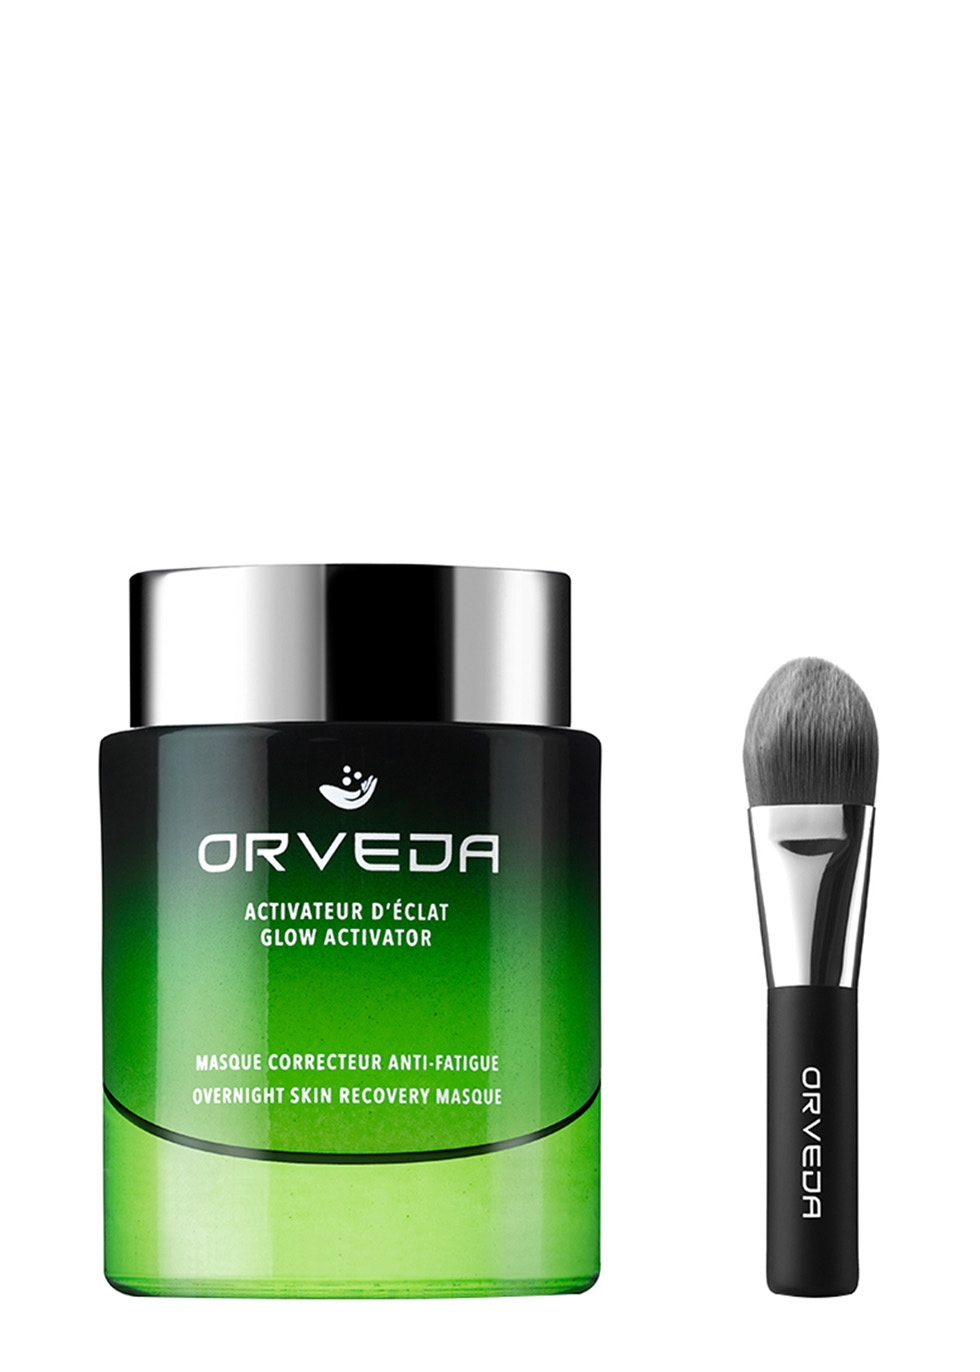 Overnight Skin Recovery Masque 50ml - Orveda